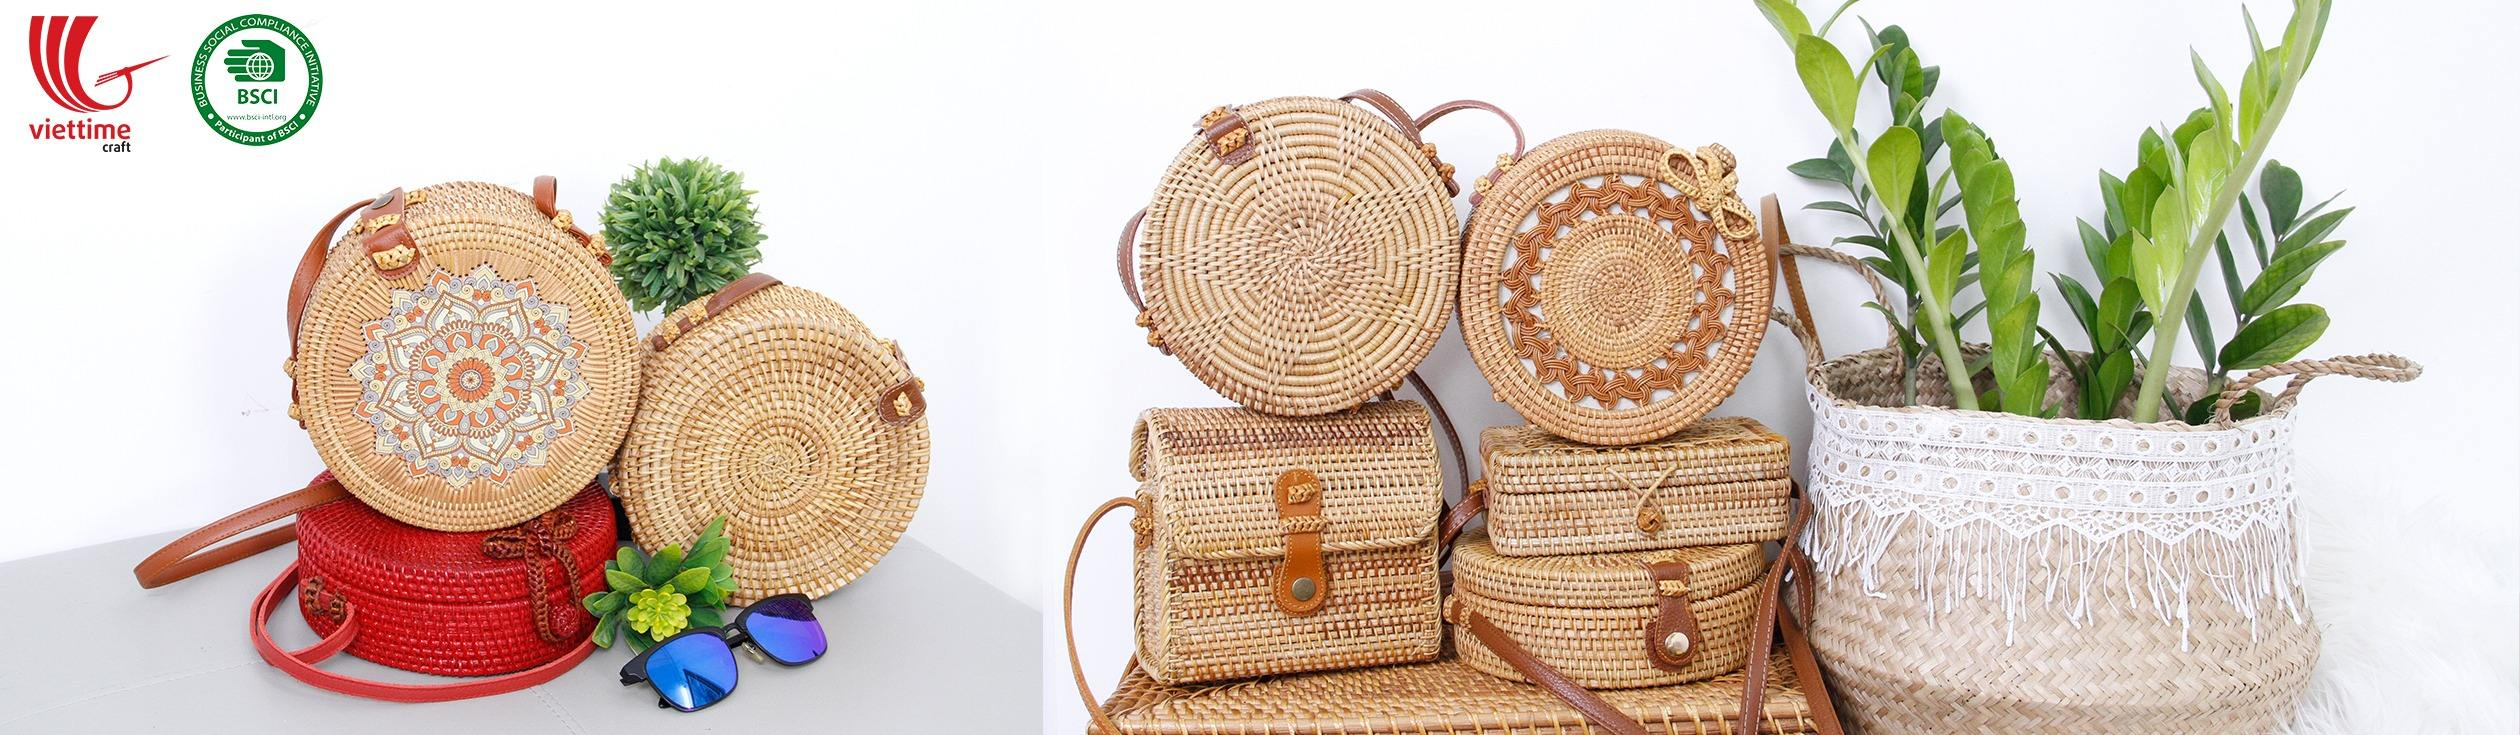 woven seagrass baskets with handles decorative storage boxes.htm indochina  jsc seagrass basket  bamboo bowls  indochina  jsc seagrass basket